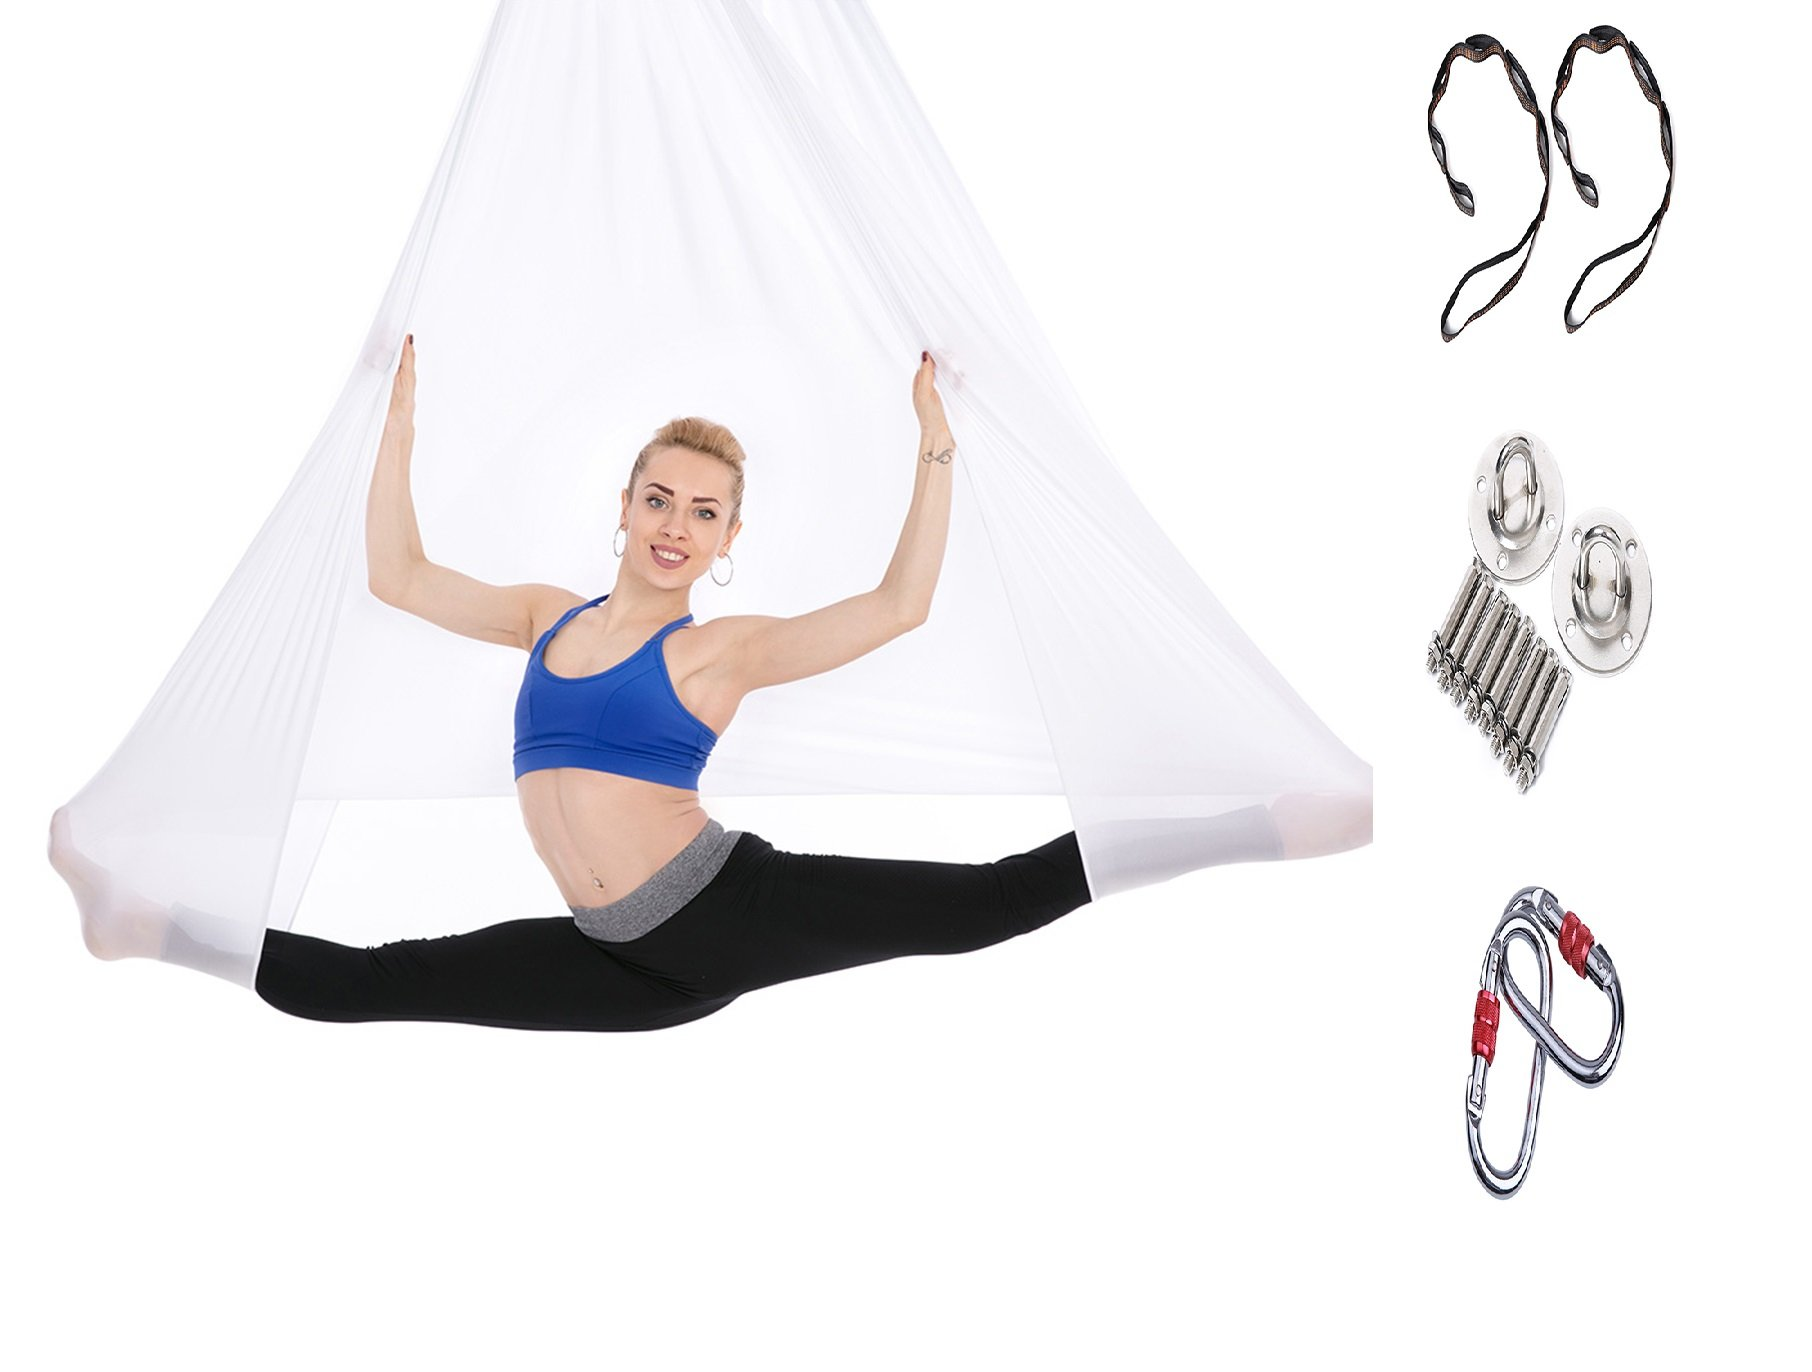 Tofern Aerial Yoga Hammock Kit 5.5 Yards Antigravity Trapeze Inversion Exercise Home Indoor Outdoor Yoga Silk Swing Sling Set with Hardware Ceiling Hooks Bolts 2 Extension Straps, White